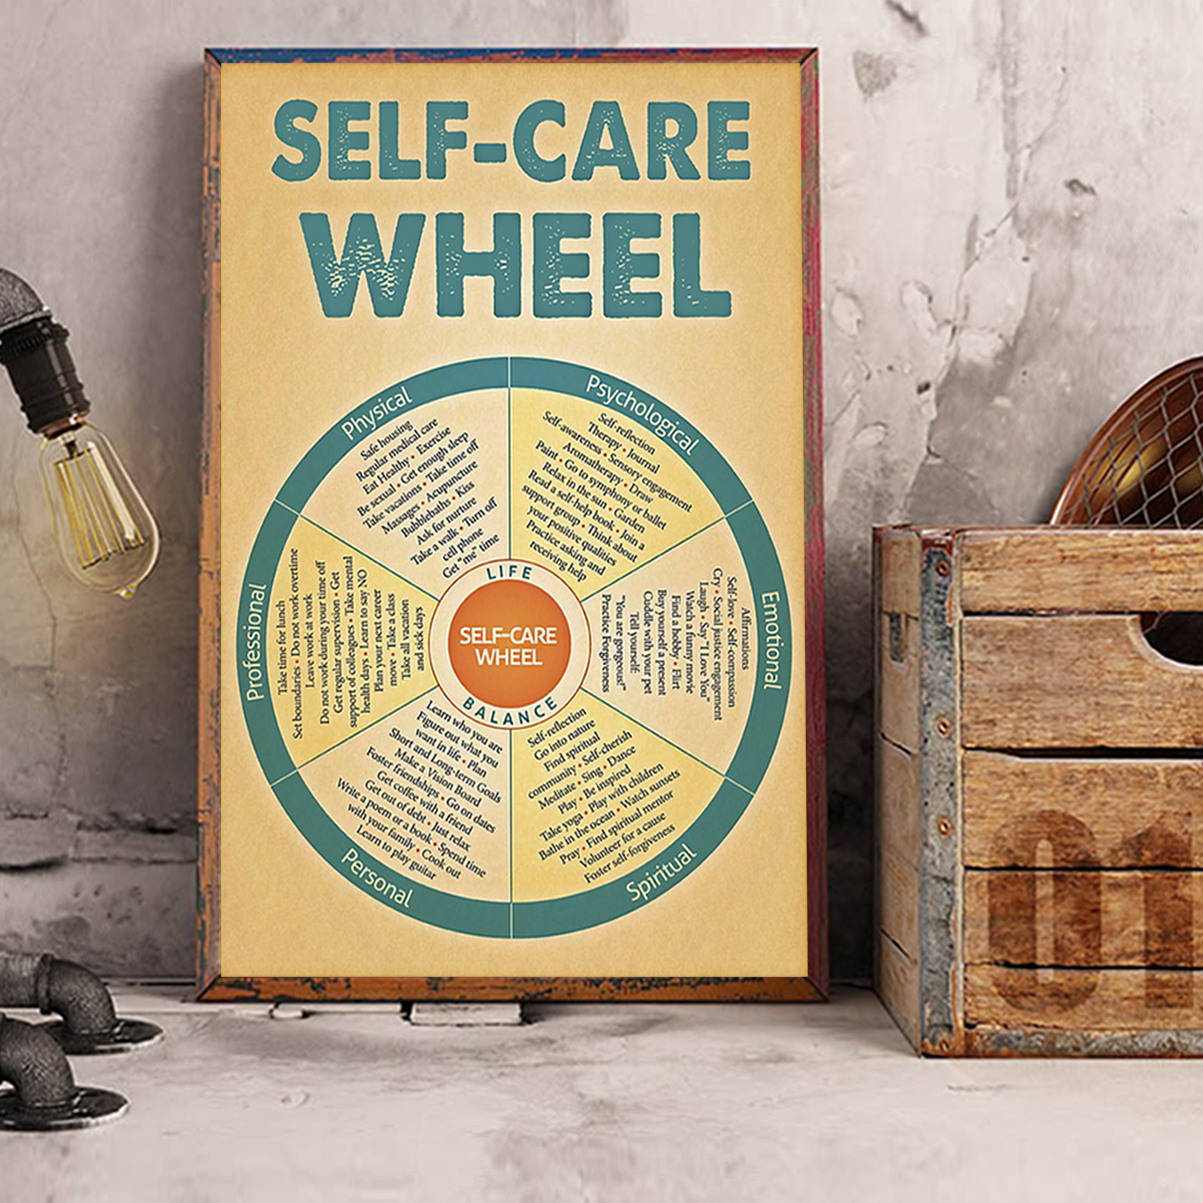 Social worker self-care wheel poster A3